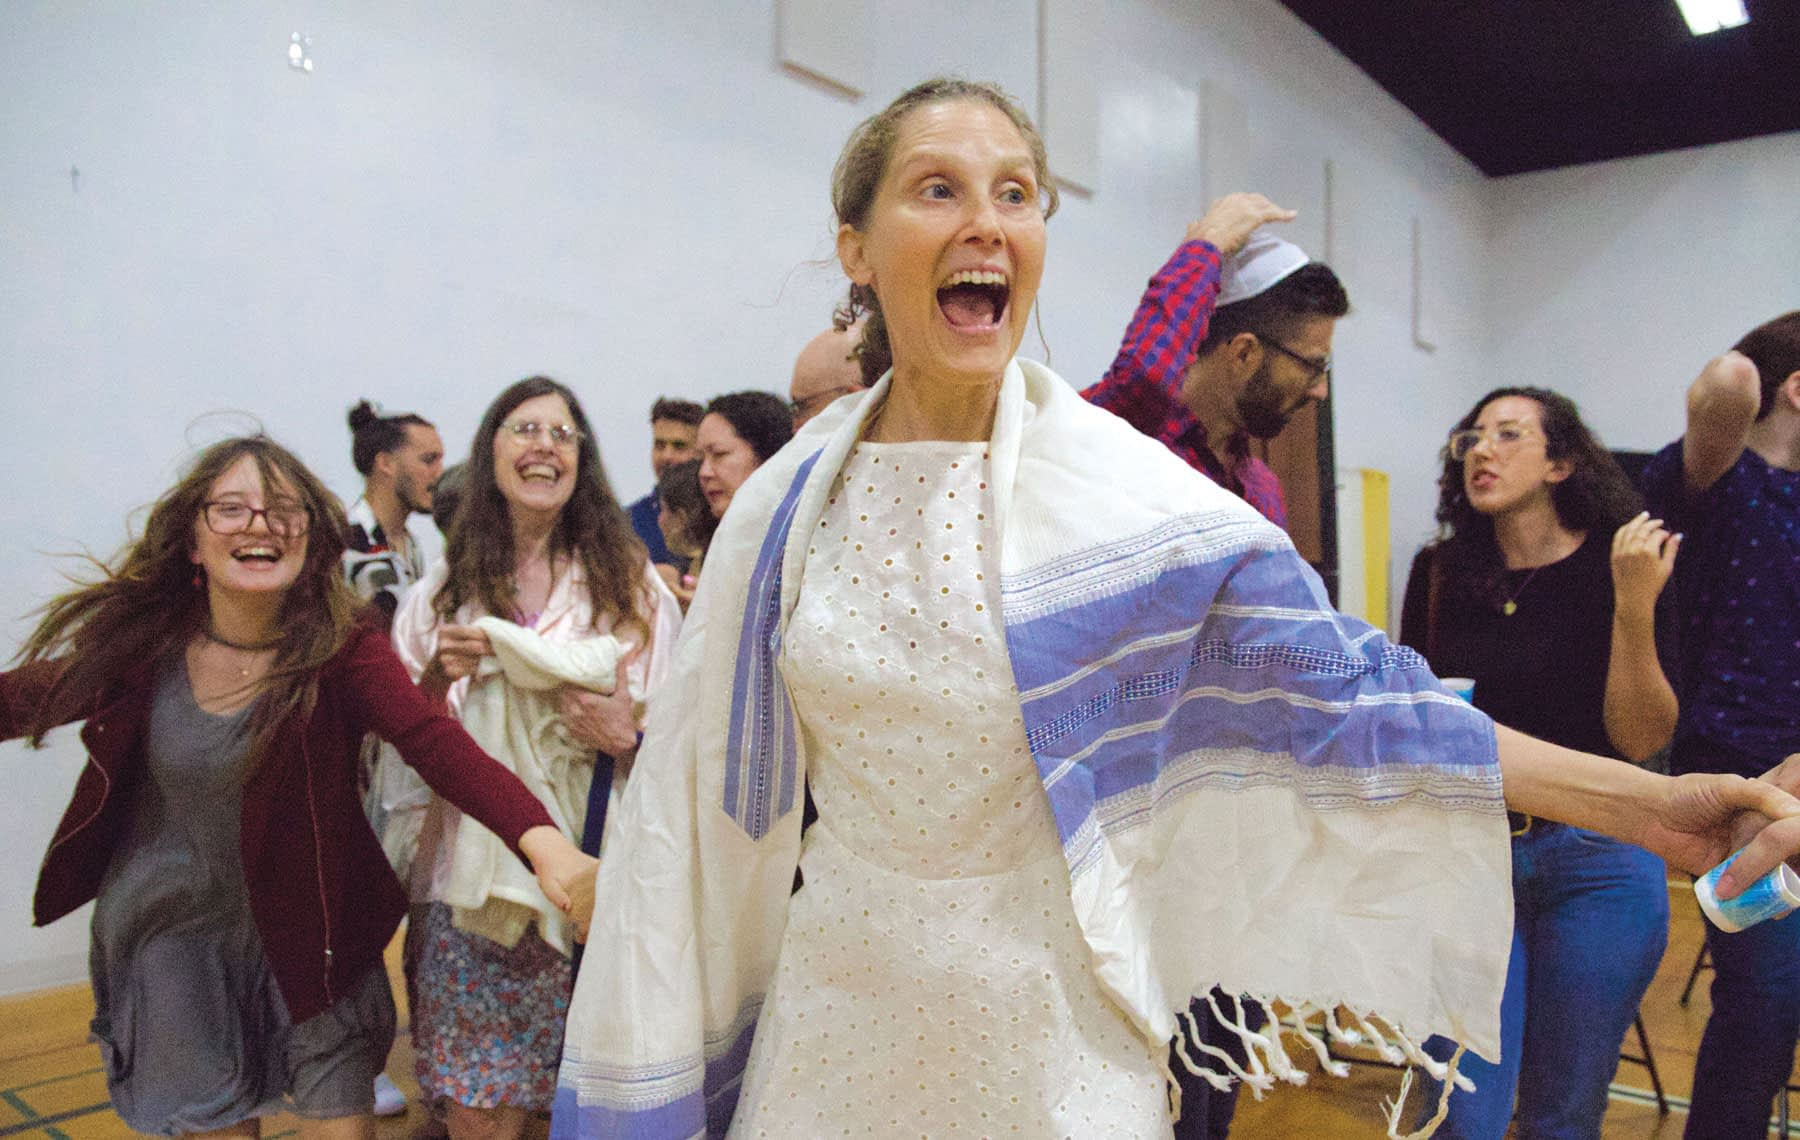 Rabbi Susan Goldberg dancing with the community